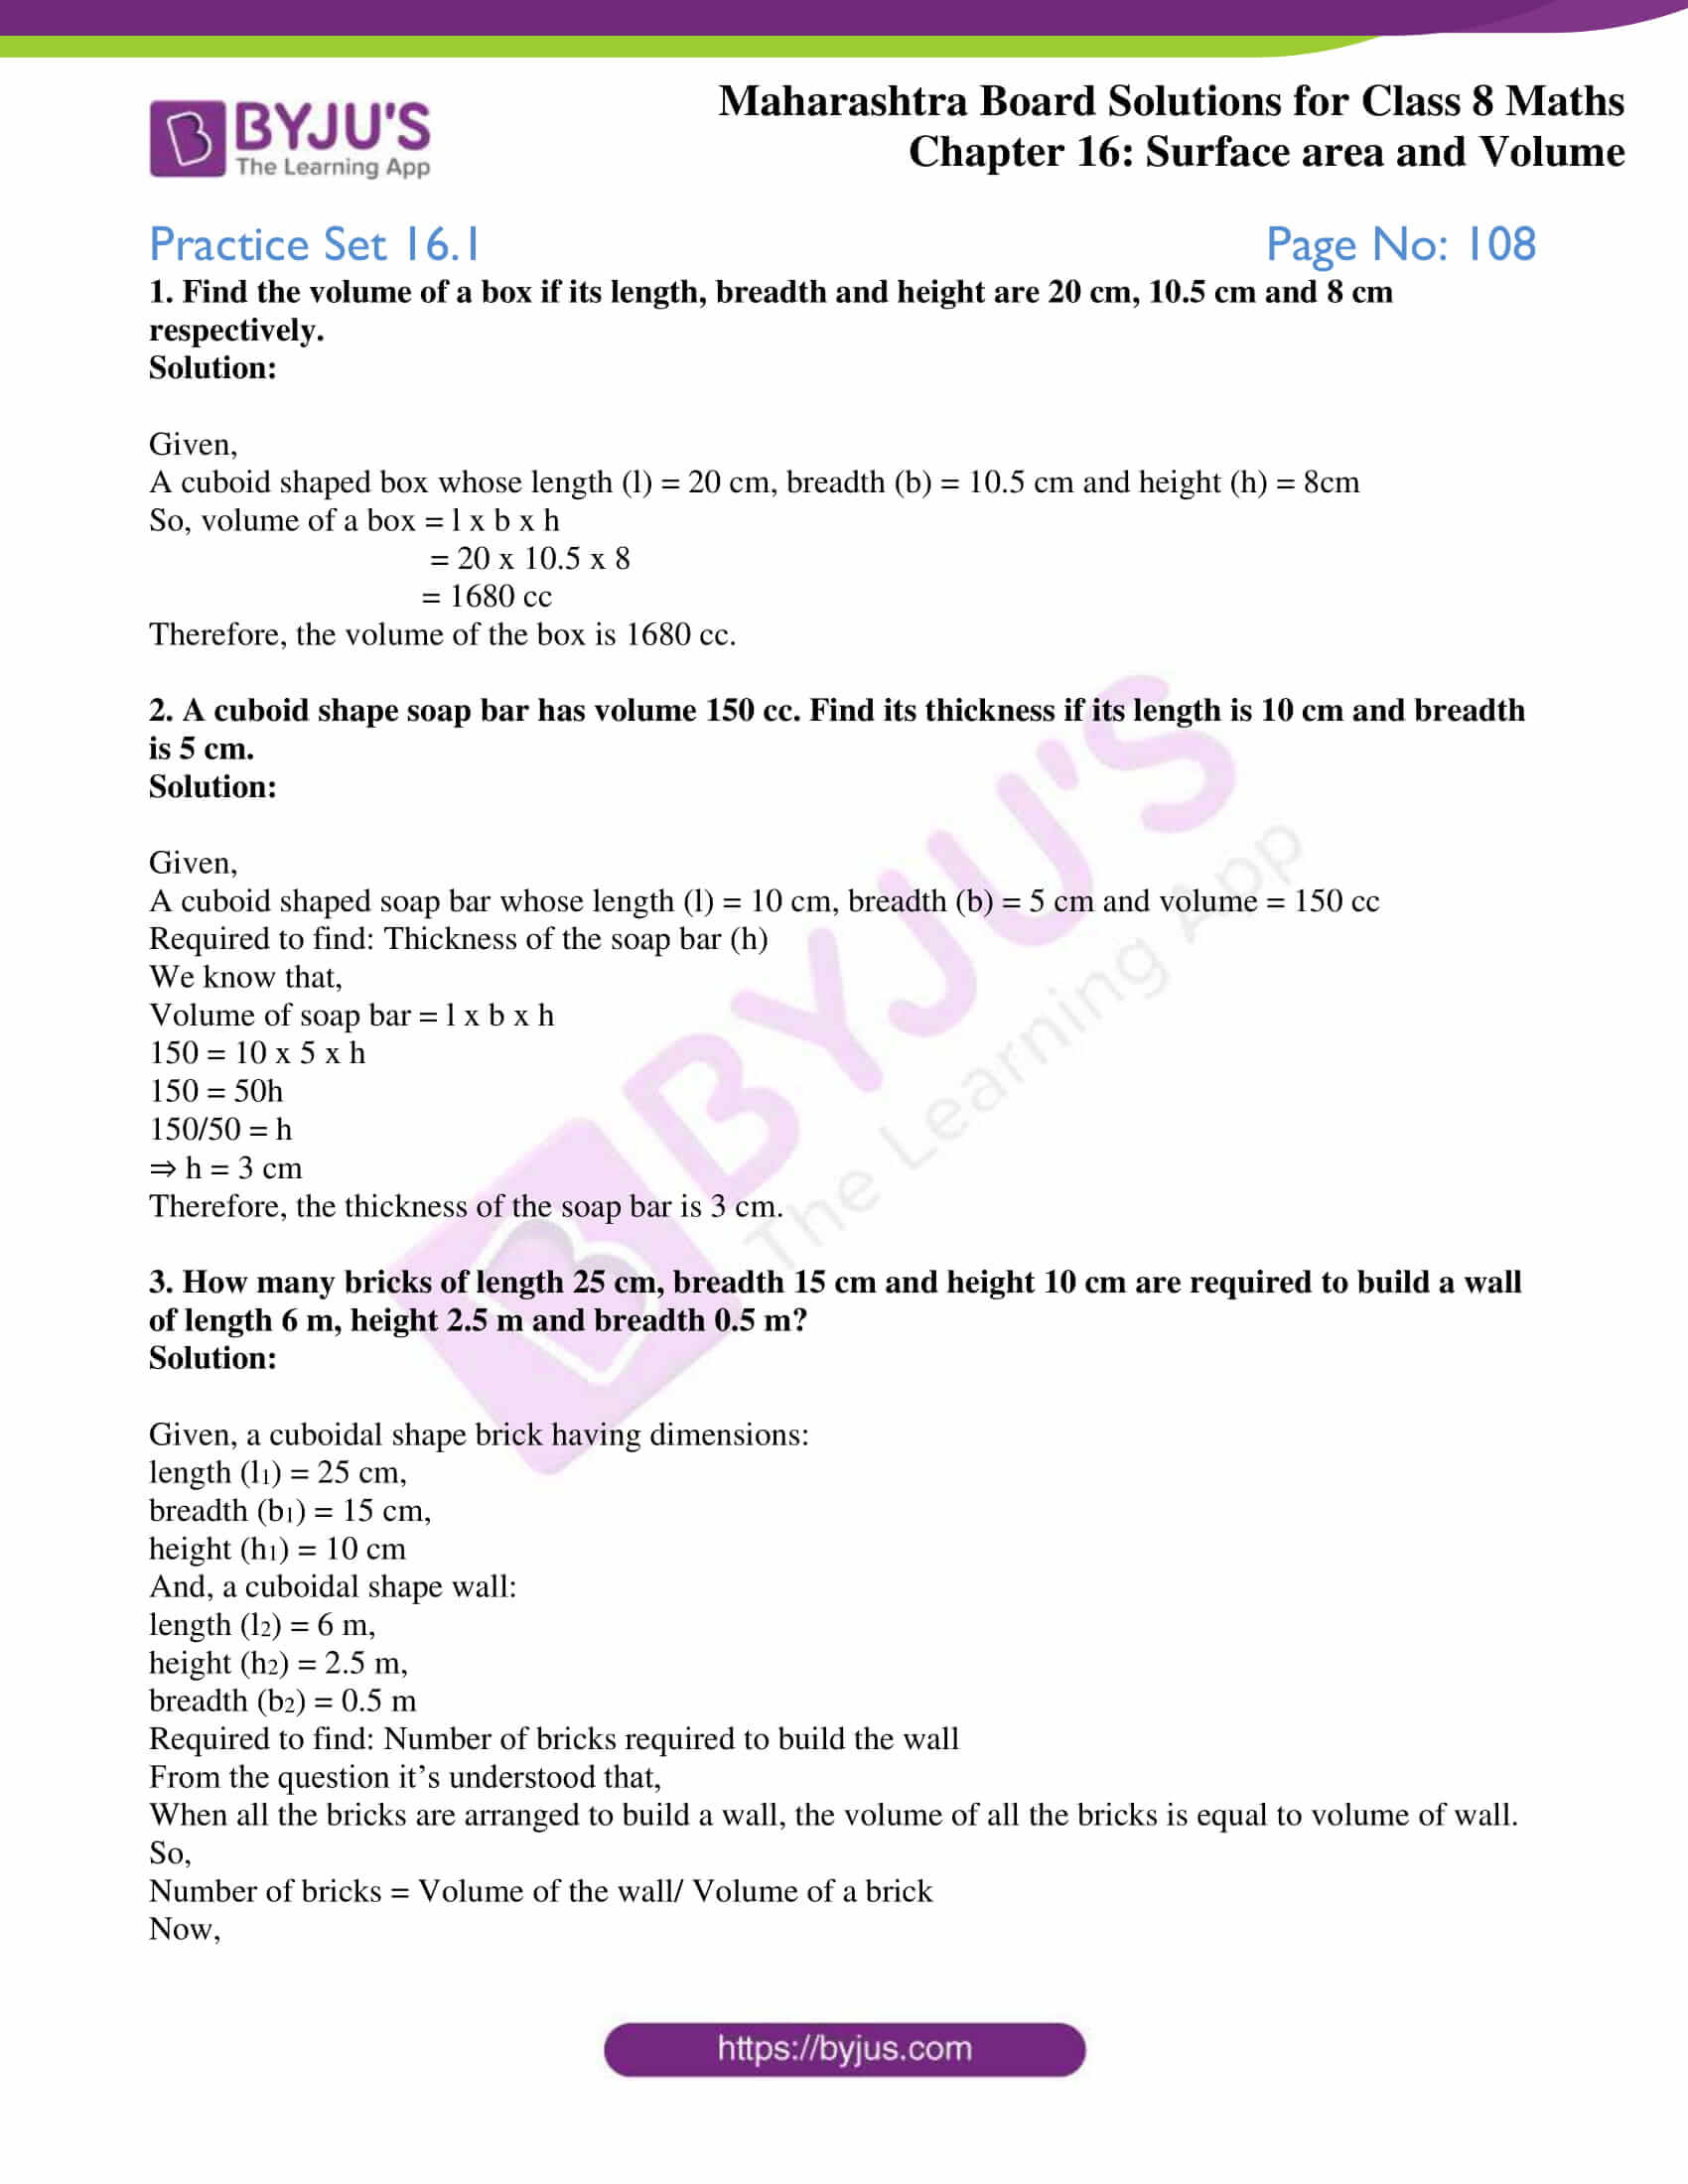 msbshse sol for class 8 maths chapter 16 1